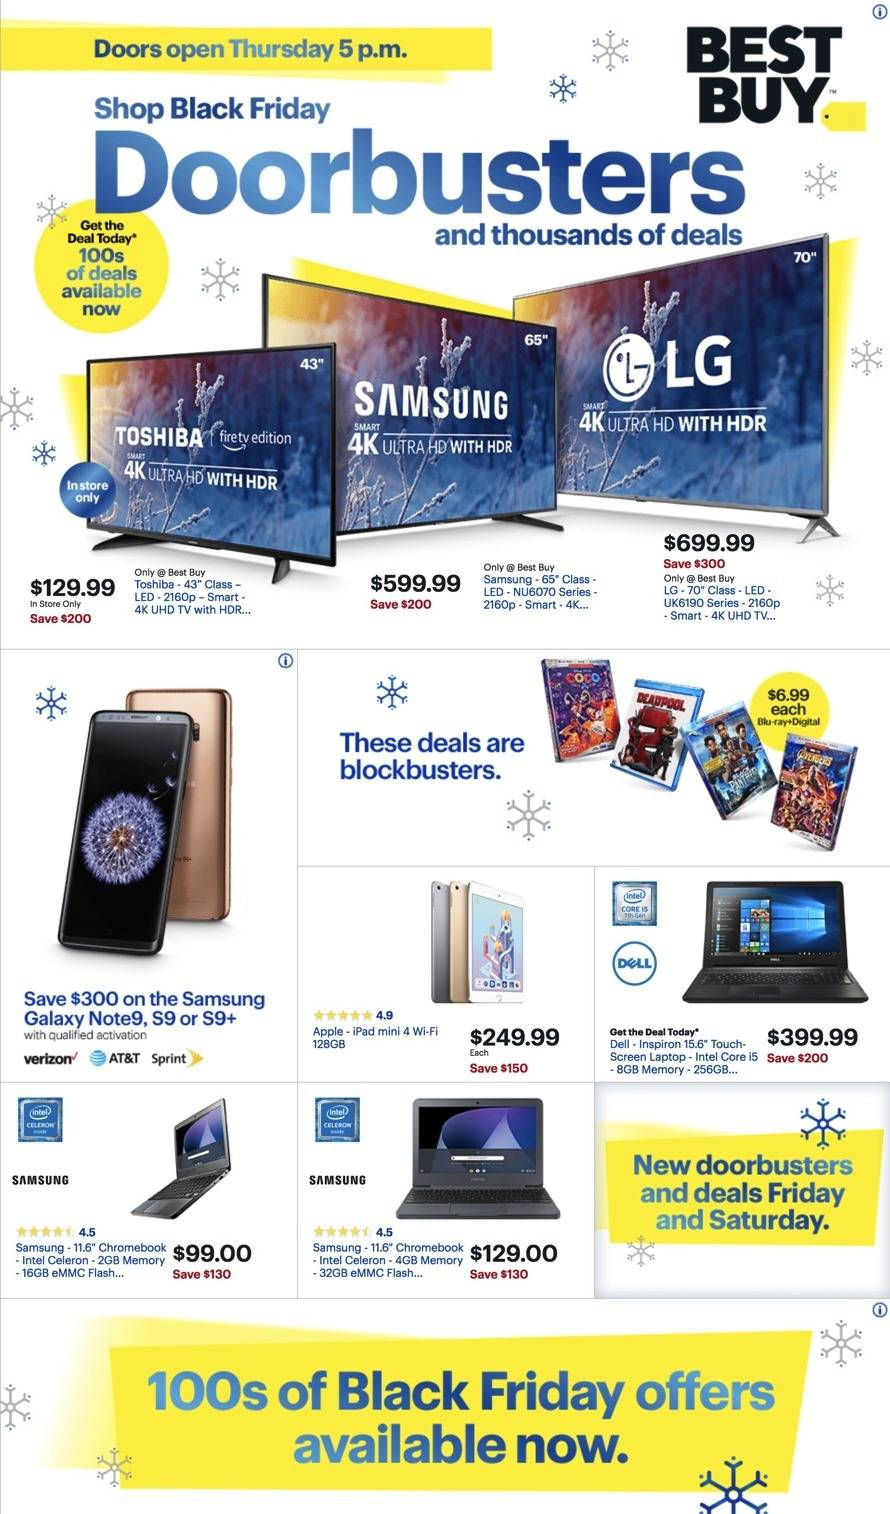 Best Buy 2018 Black Friday Ad Page 1